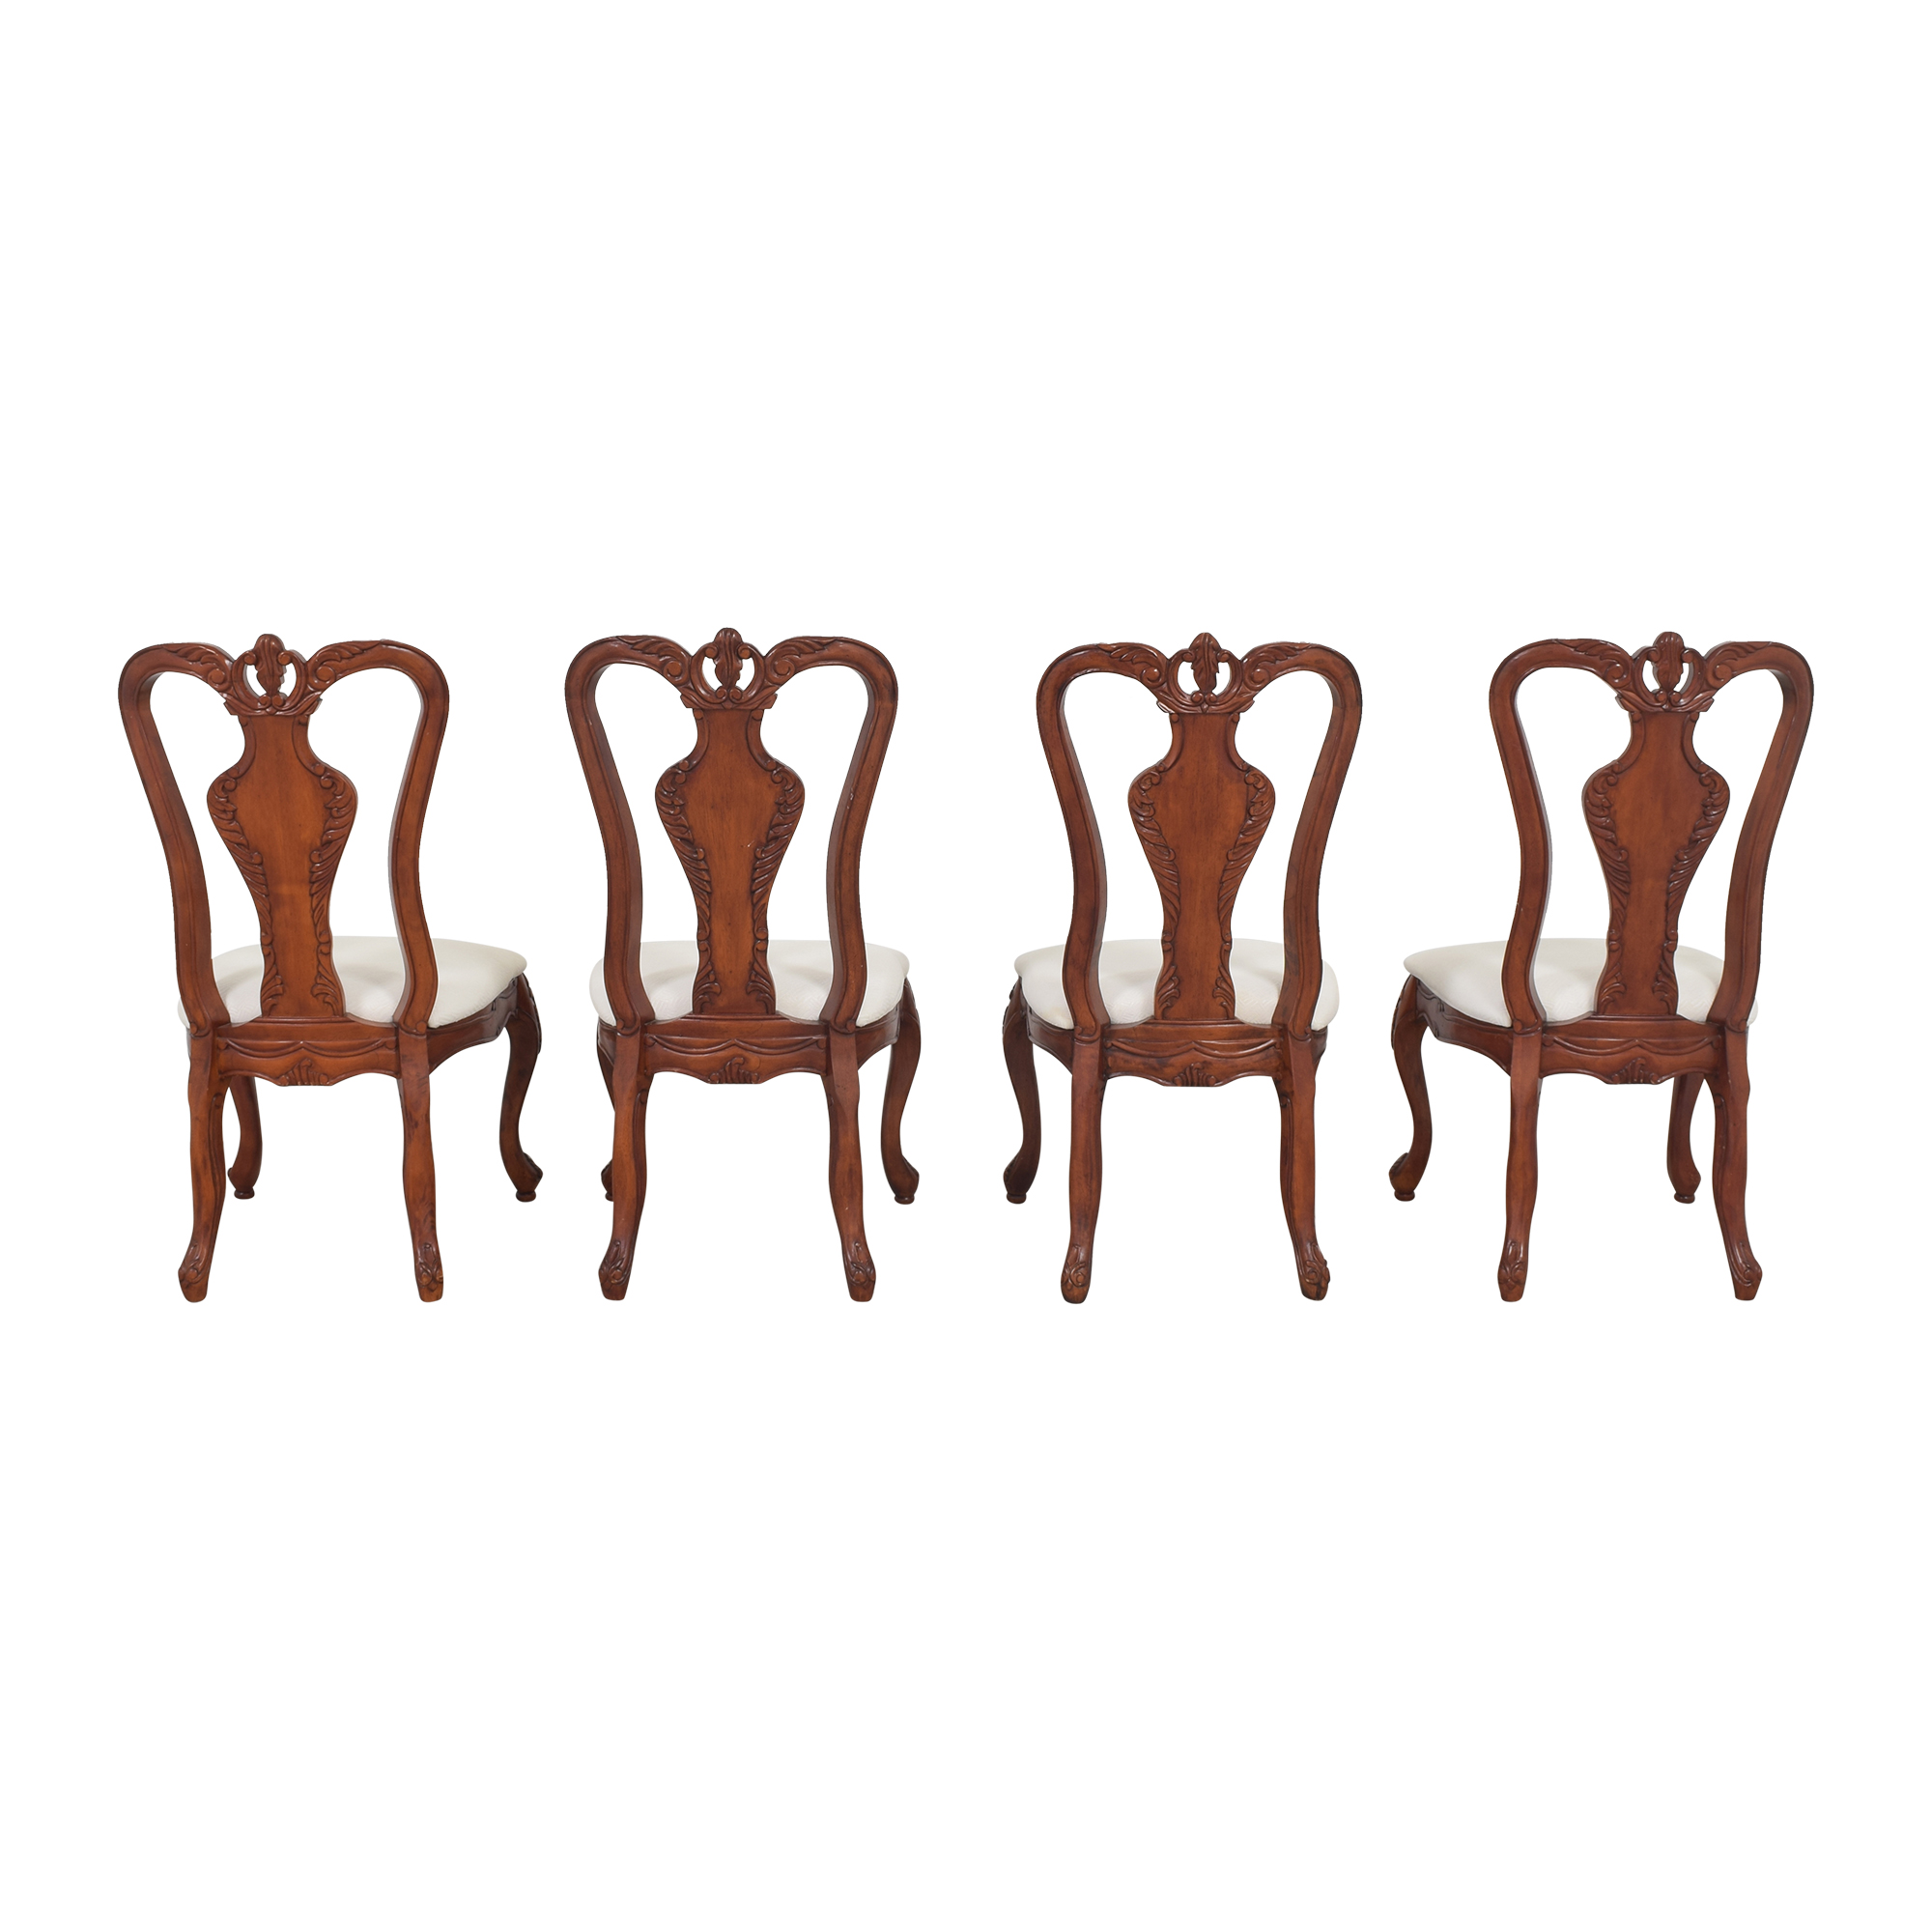 Upholstered Dining Side Chairs / Chairs